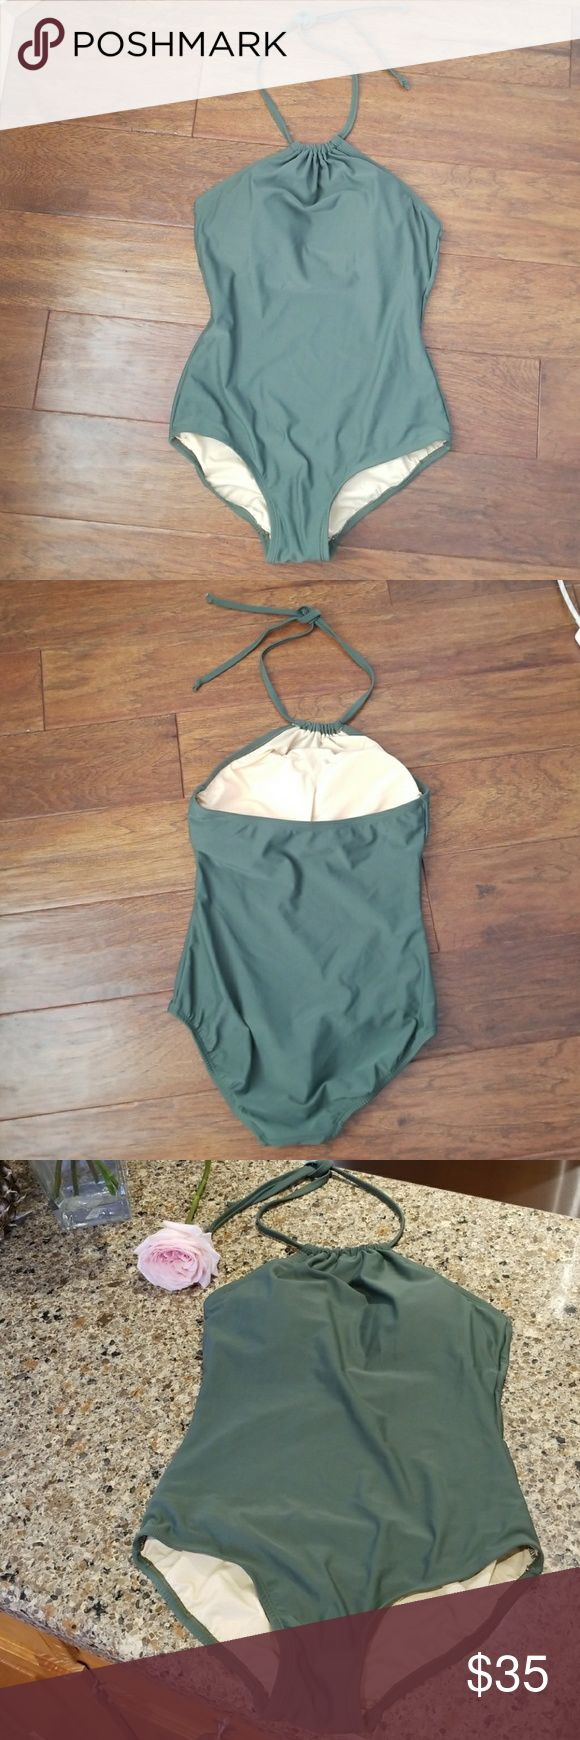 new Swimsuit Worn once for 1 hour by the pool at the hotel, never been in the water other than washed once in a mild soapy water. Padded removable cups, halter top, bottom provides full coverage.  Clean, no odors, like new.  The photos with a model are to show fit only, the only swimsuit for sale is the military green one piece. Sea and Sand Swim One Pieces